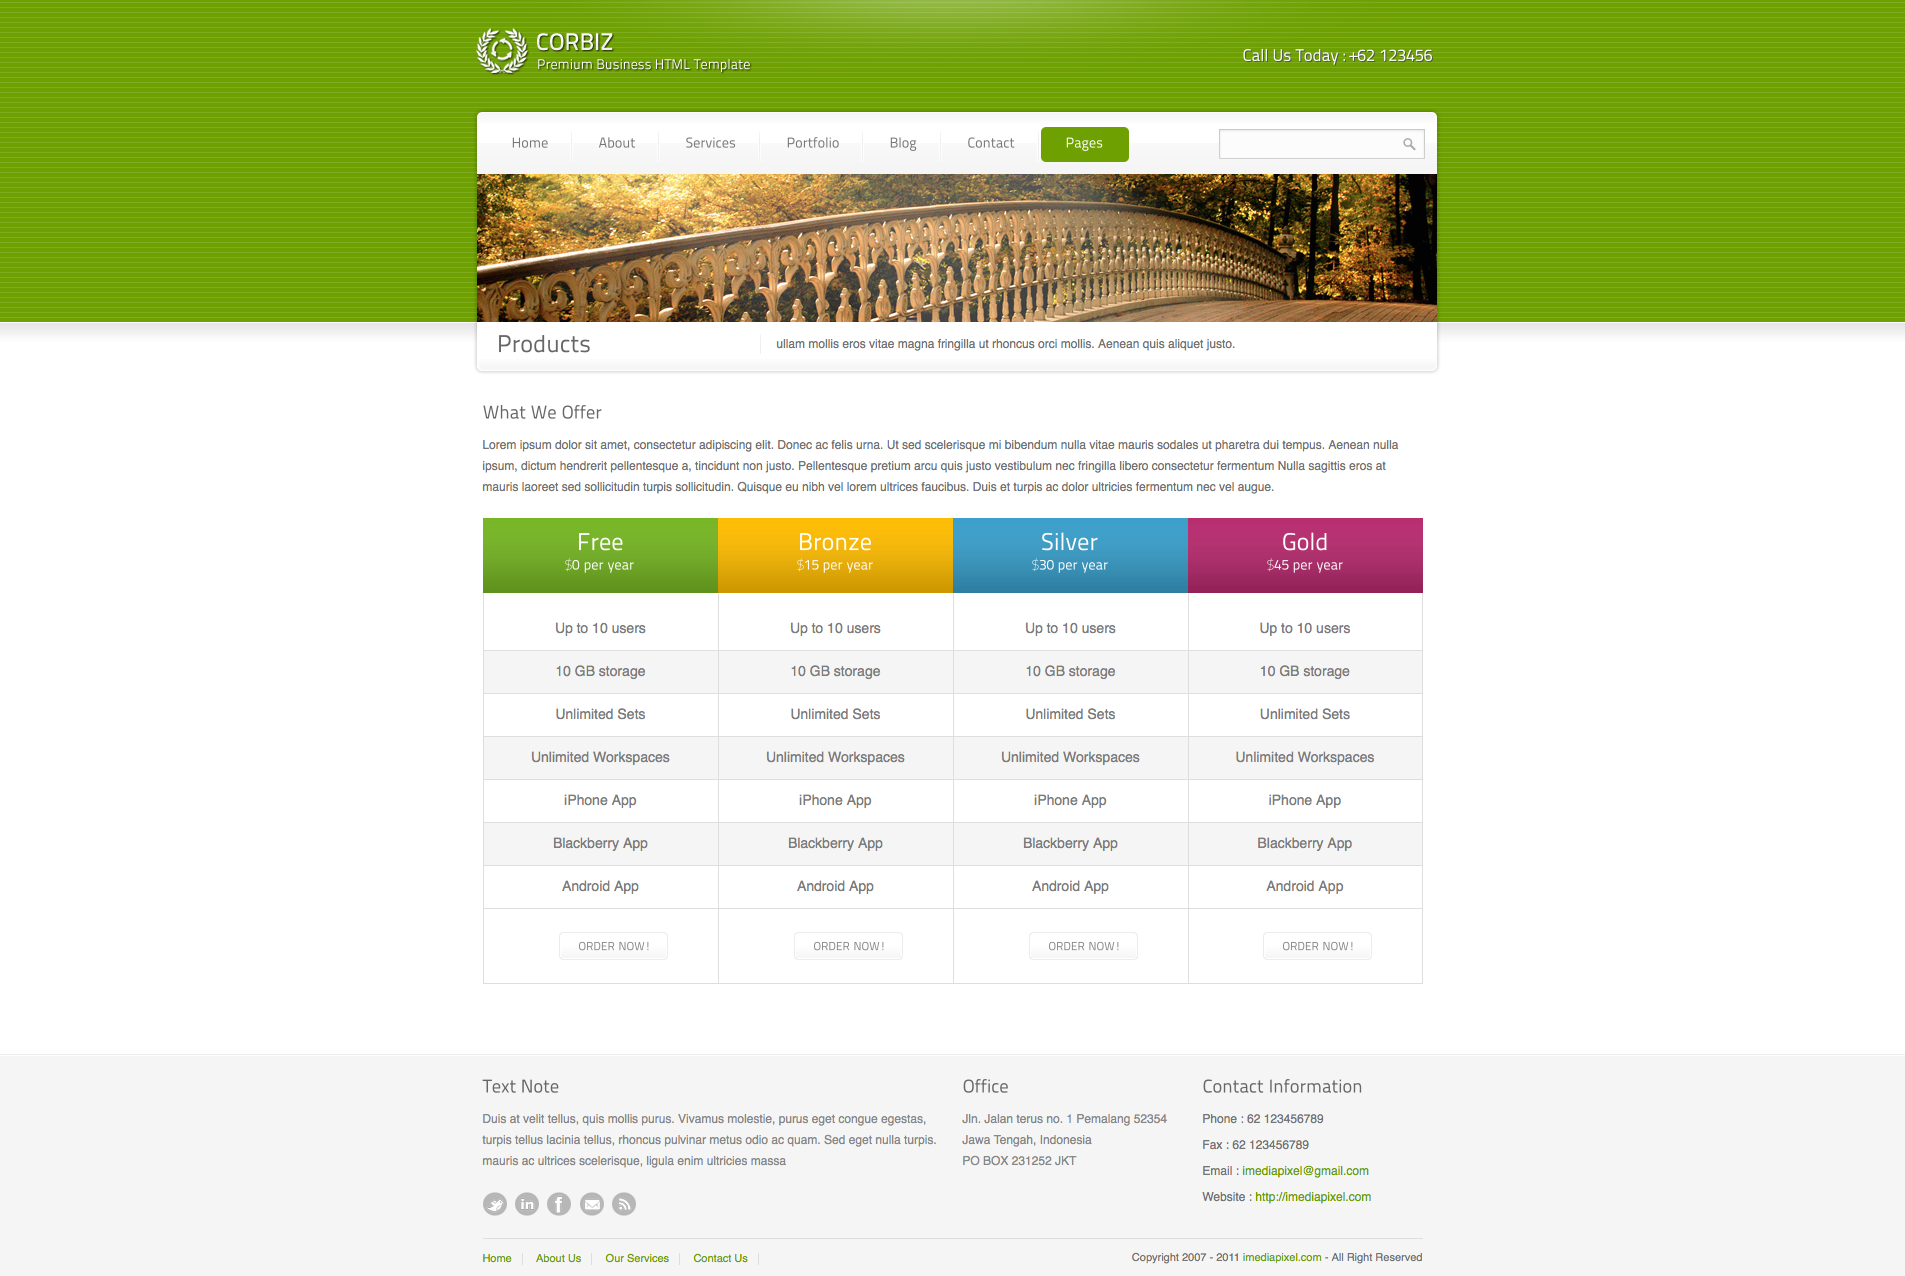 corbiz - Corporate and Business HTML Template